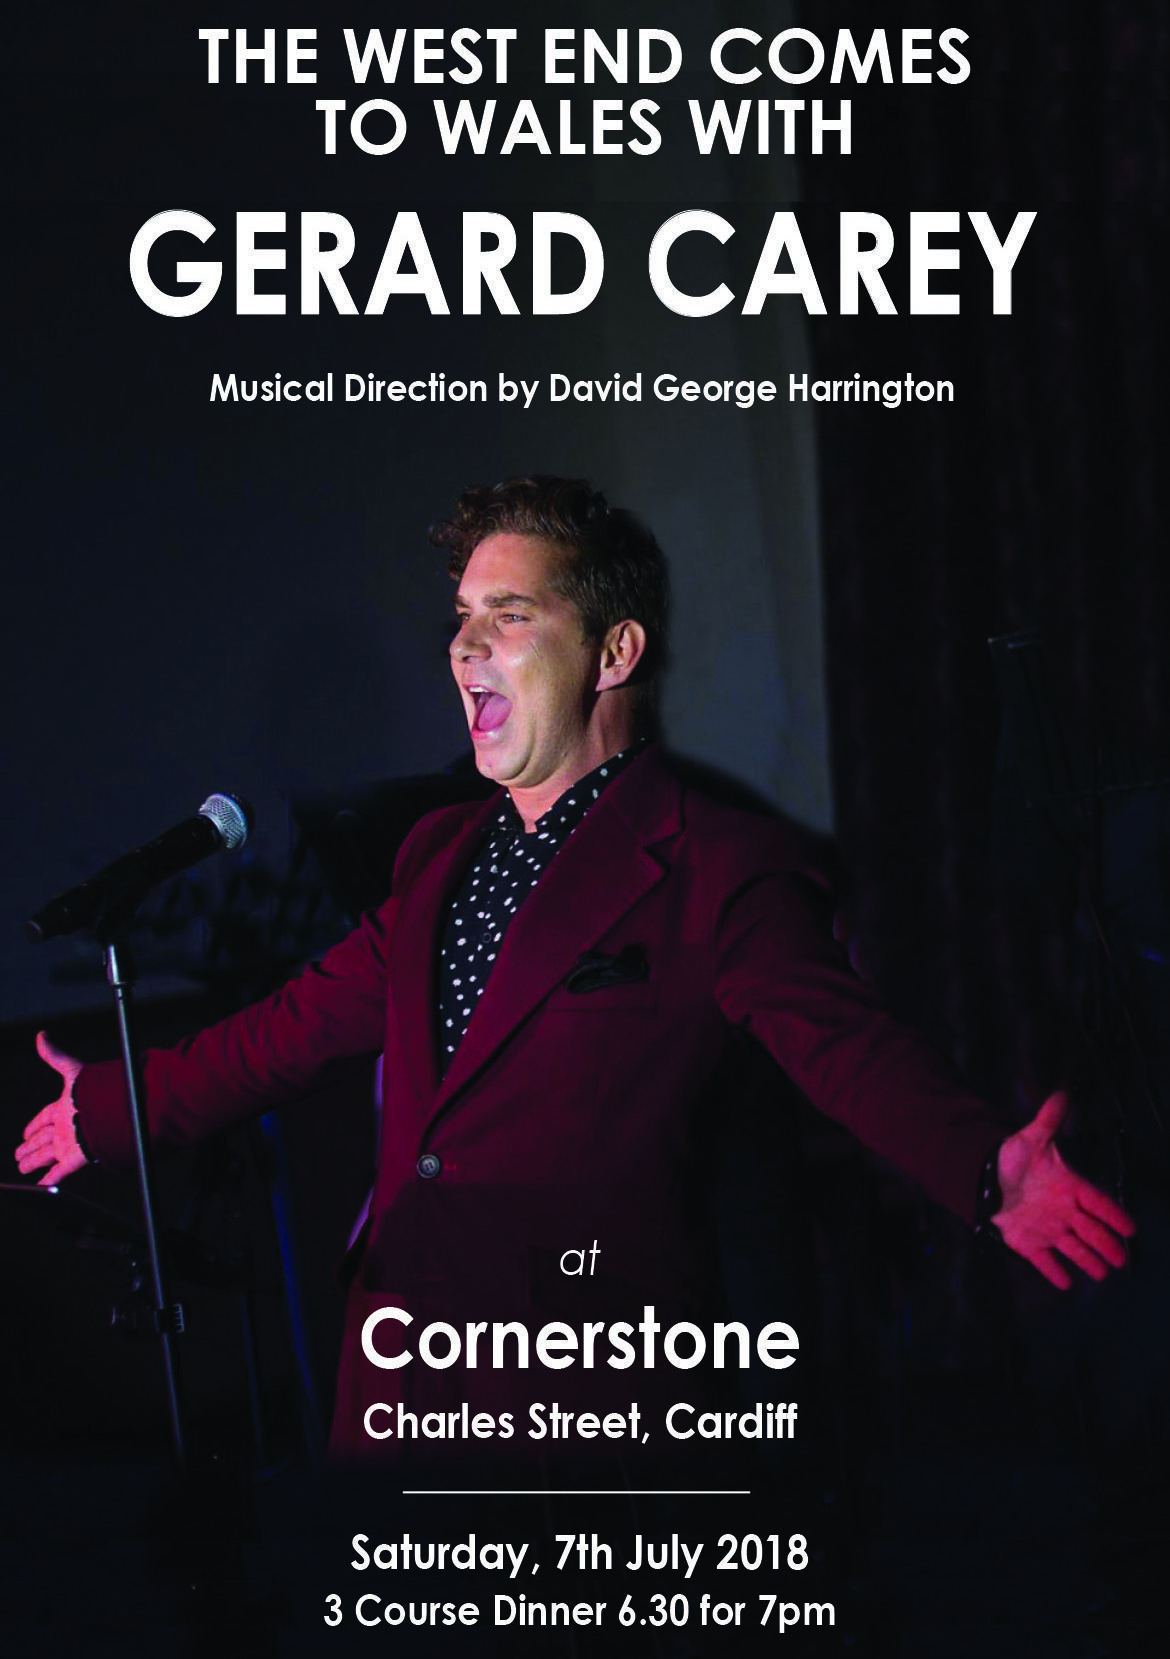 Gerard Carey at Cornerstone Cardiff in July 2018